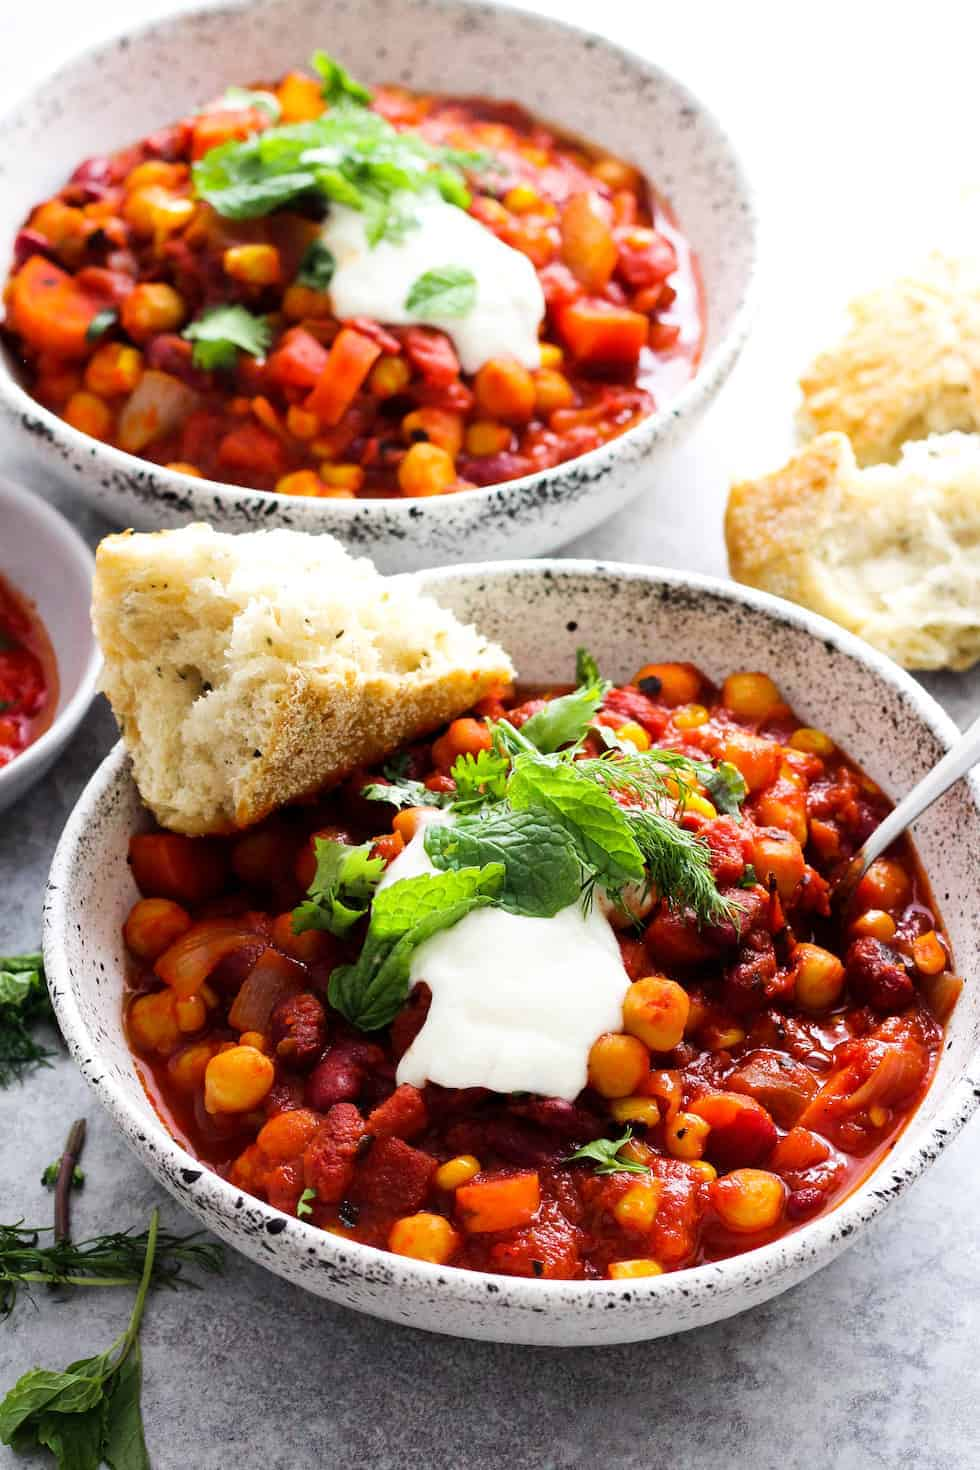 Vegan soup recipes, harissa bean chili in white bowl with bread.